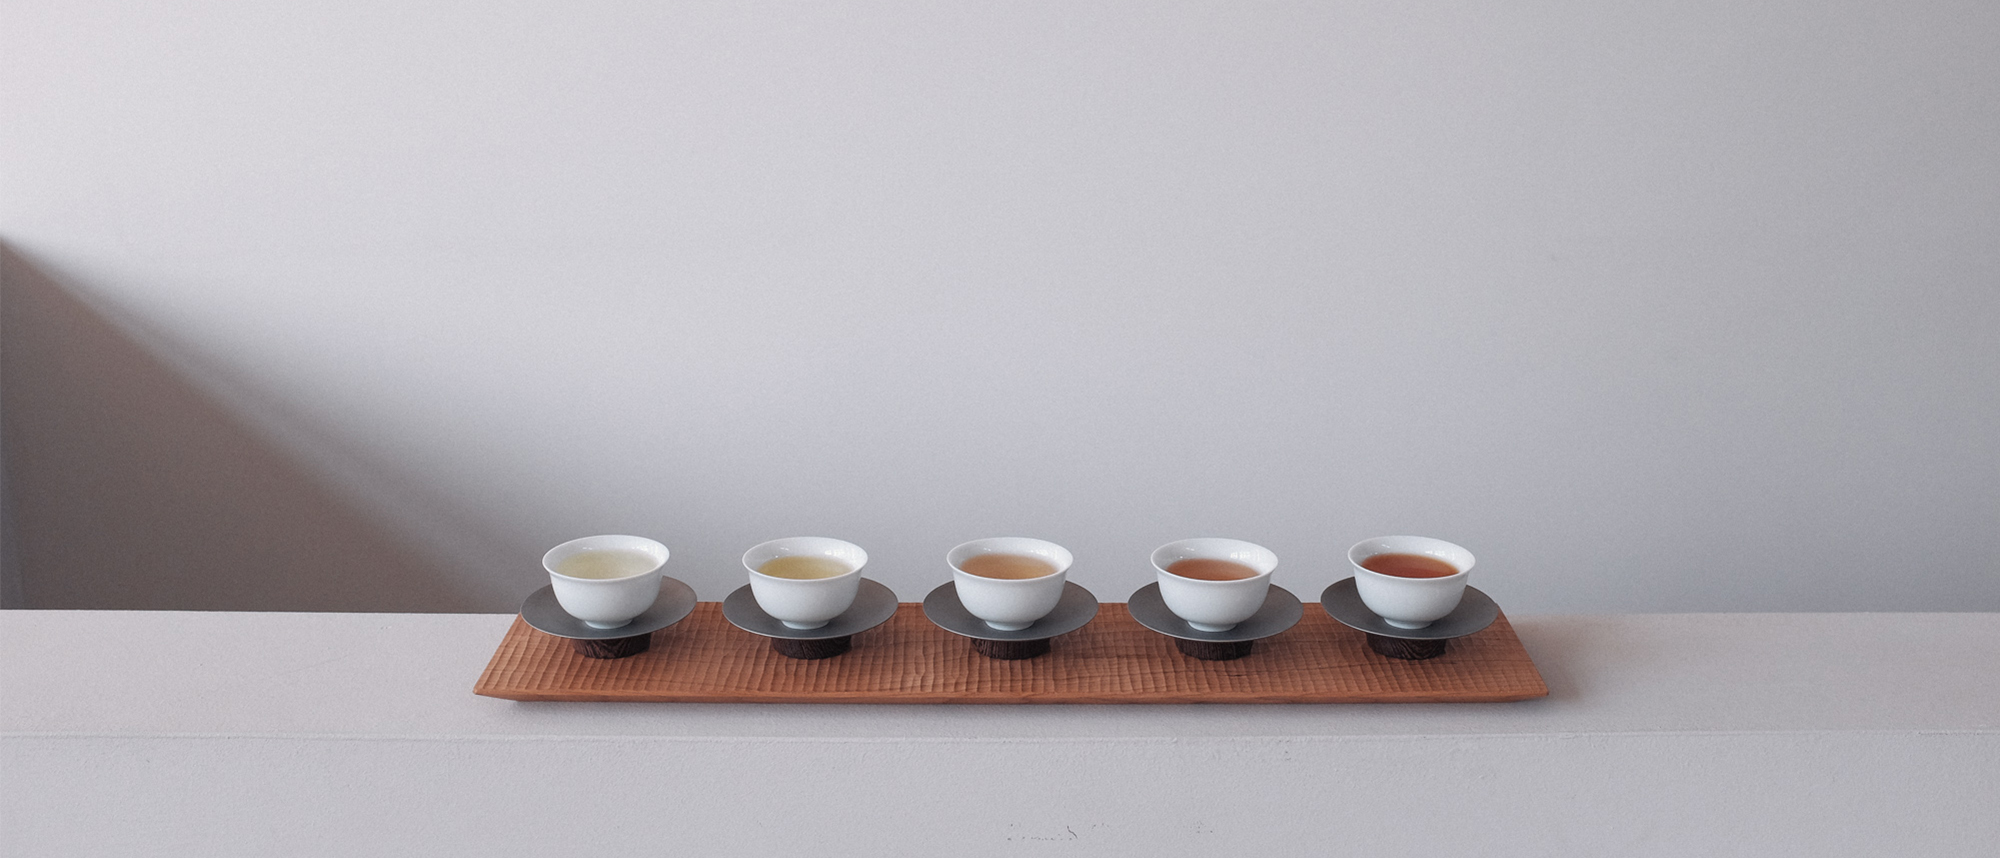 'Wu': Five Oolong Teas from Taiwan